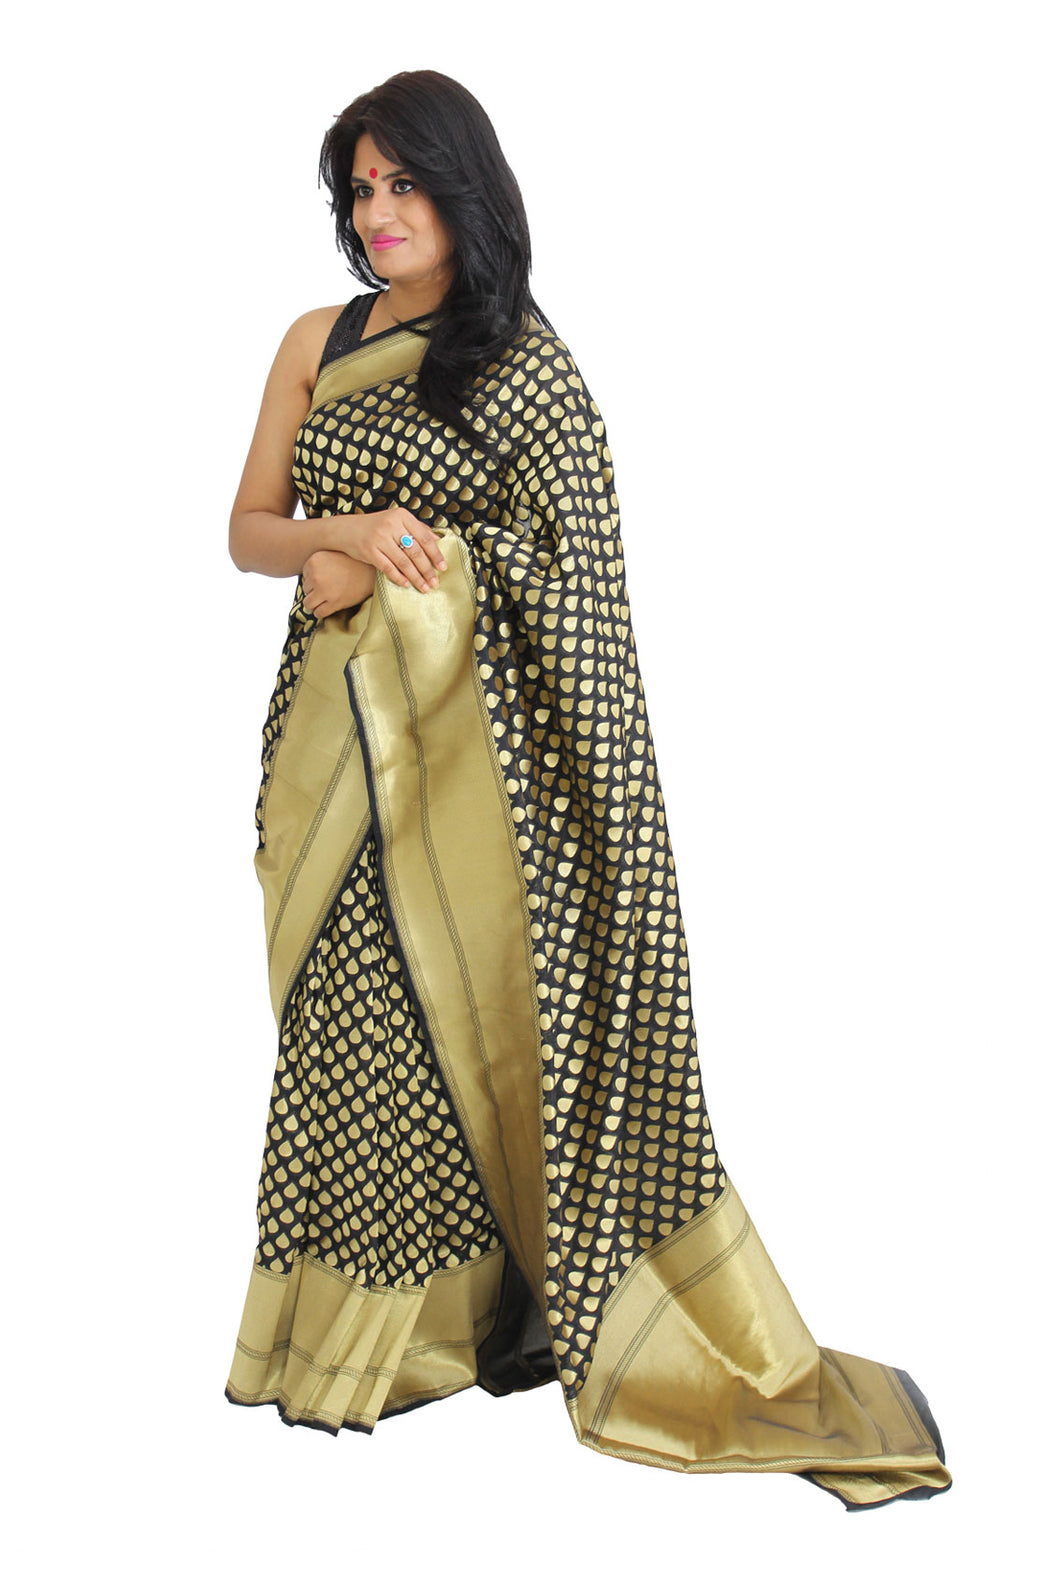 Black Upada silk saree with gold zari motifs and border